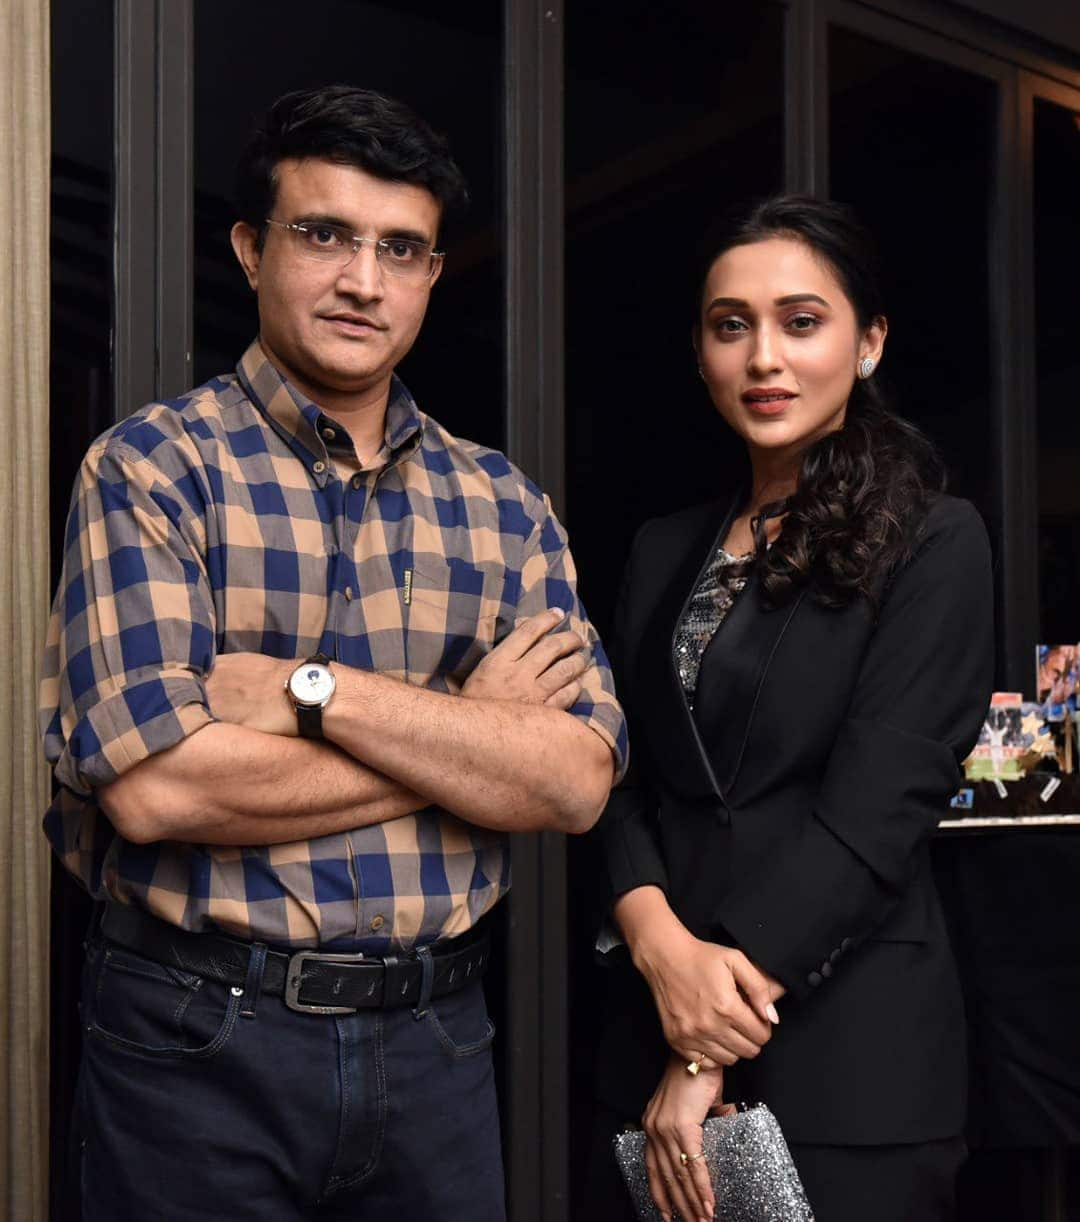 BCCI President Sourav Ganguly Poses With MP Mimi Chakraborty